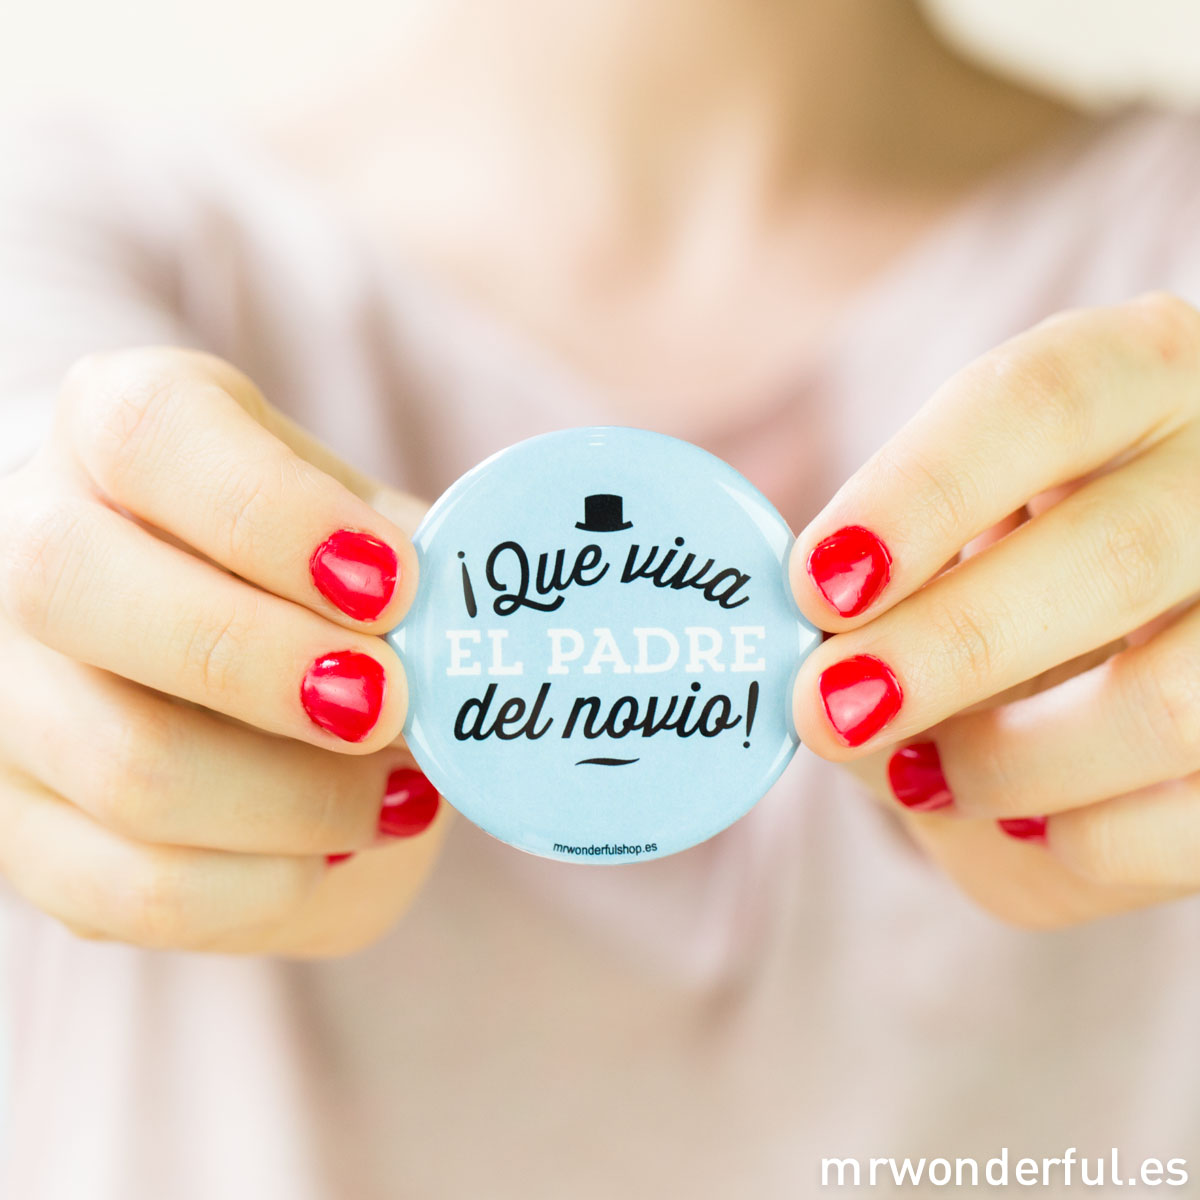 mrwonderful_CHAP04_chapas-superchulas-bodas-color-pack-25-Editar